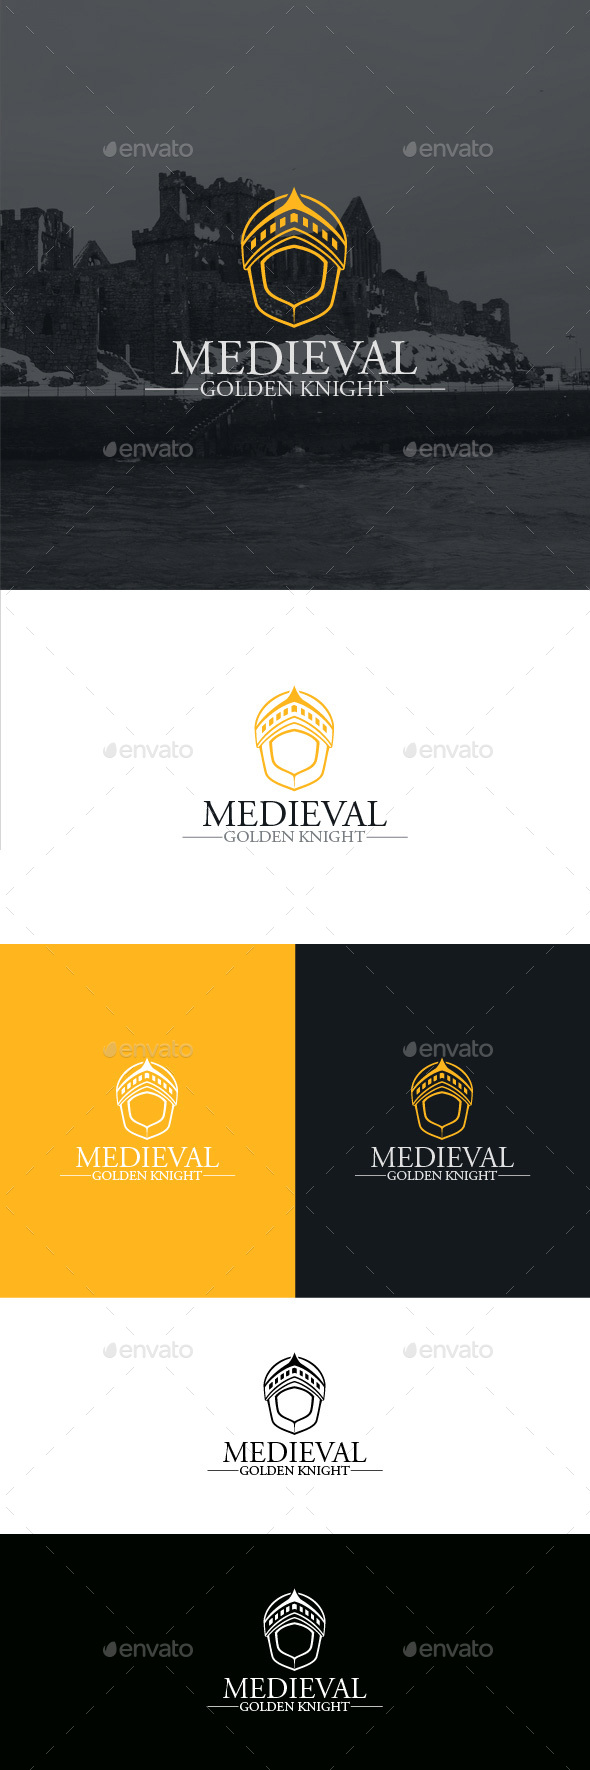 Medieval Golden Knight Logo Template - Symbols Logo Templates